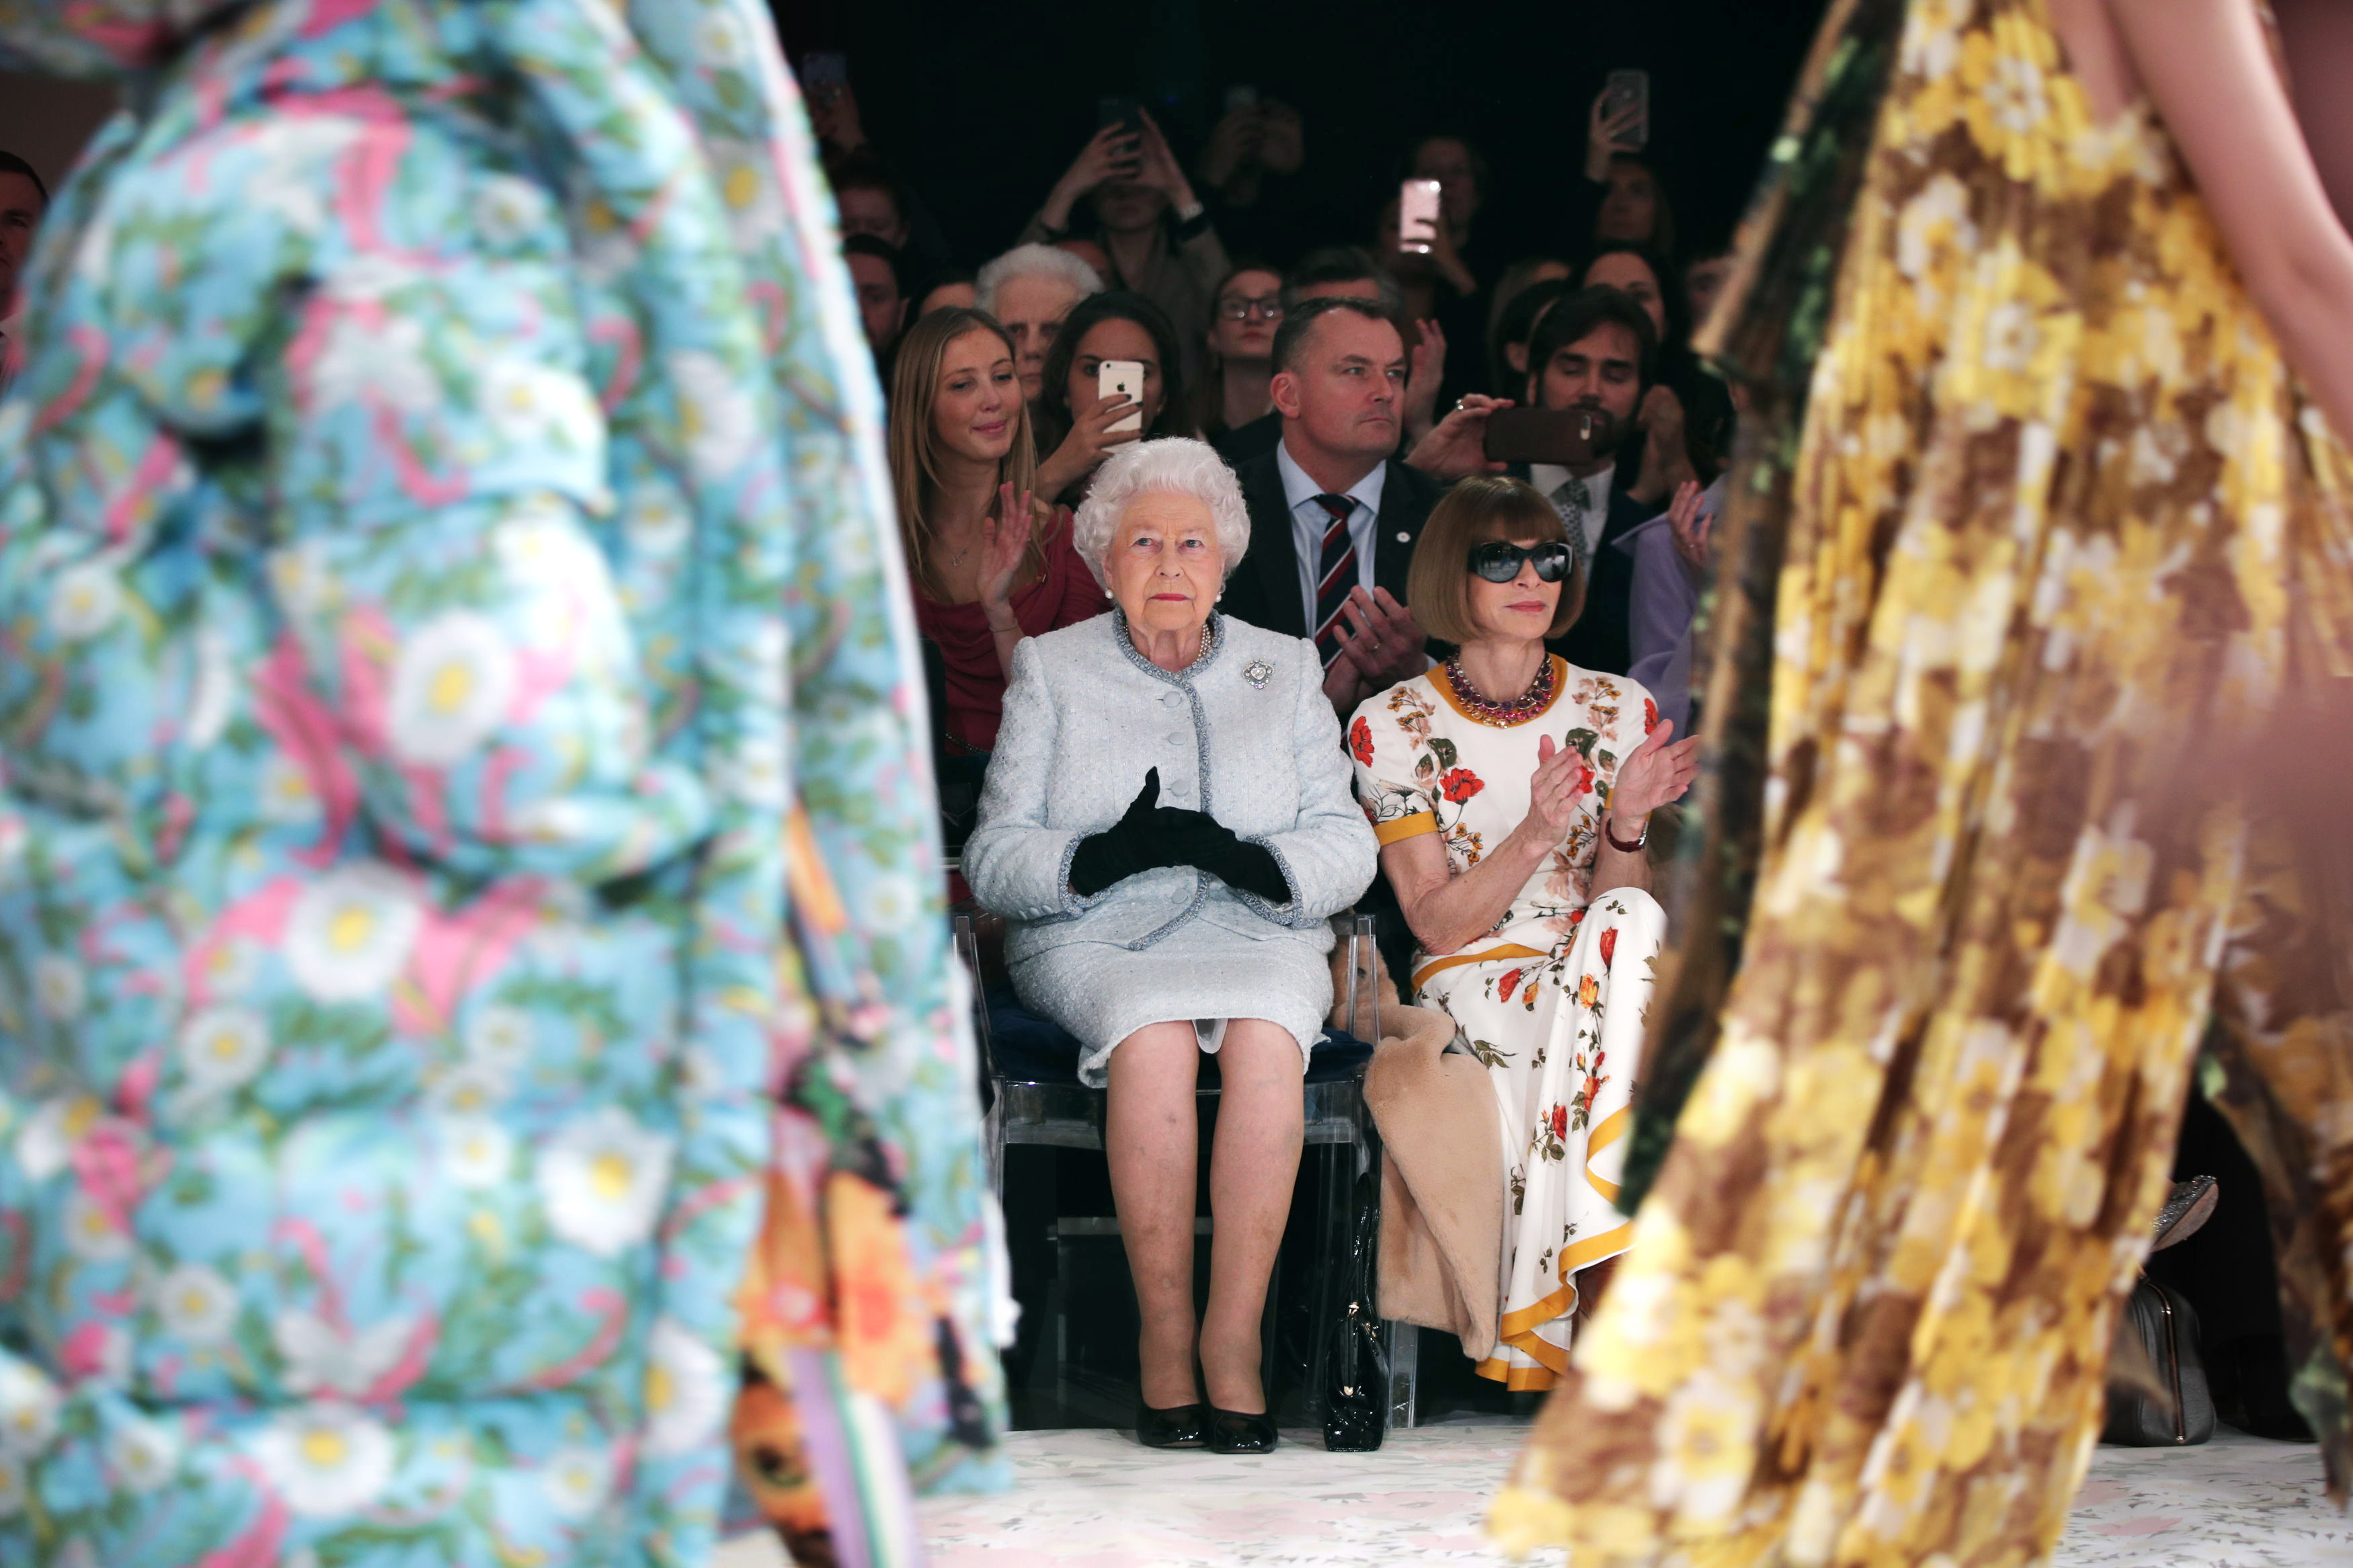 The Queen Elizabeth, London Fashion Week